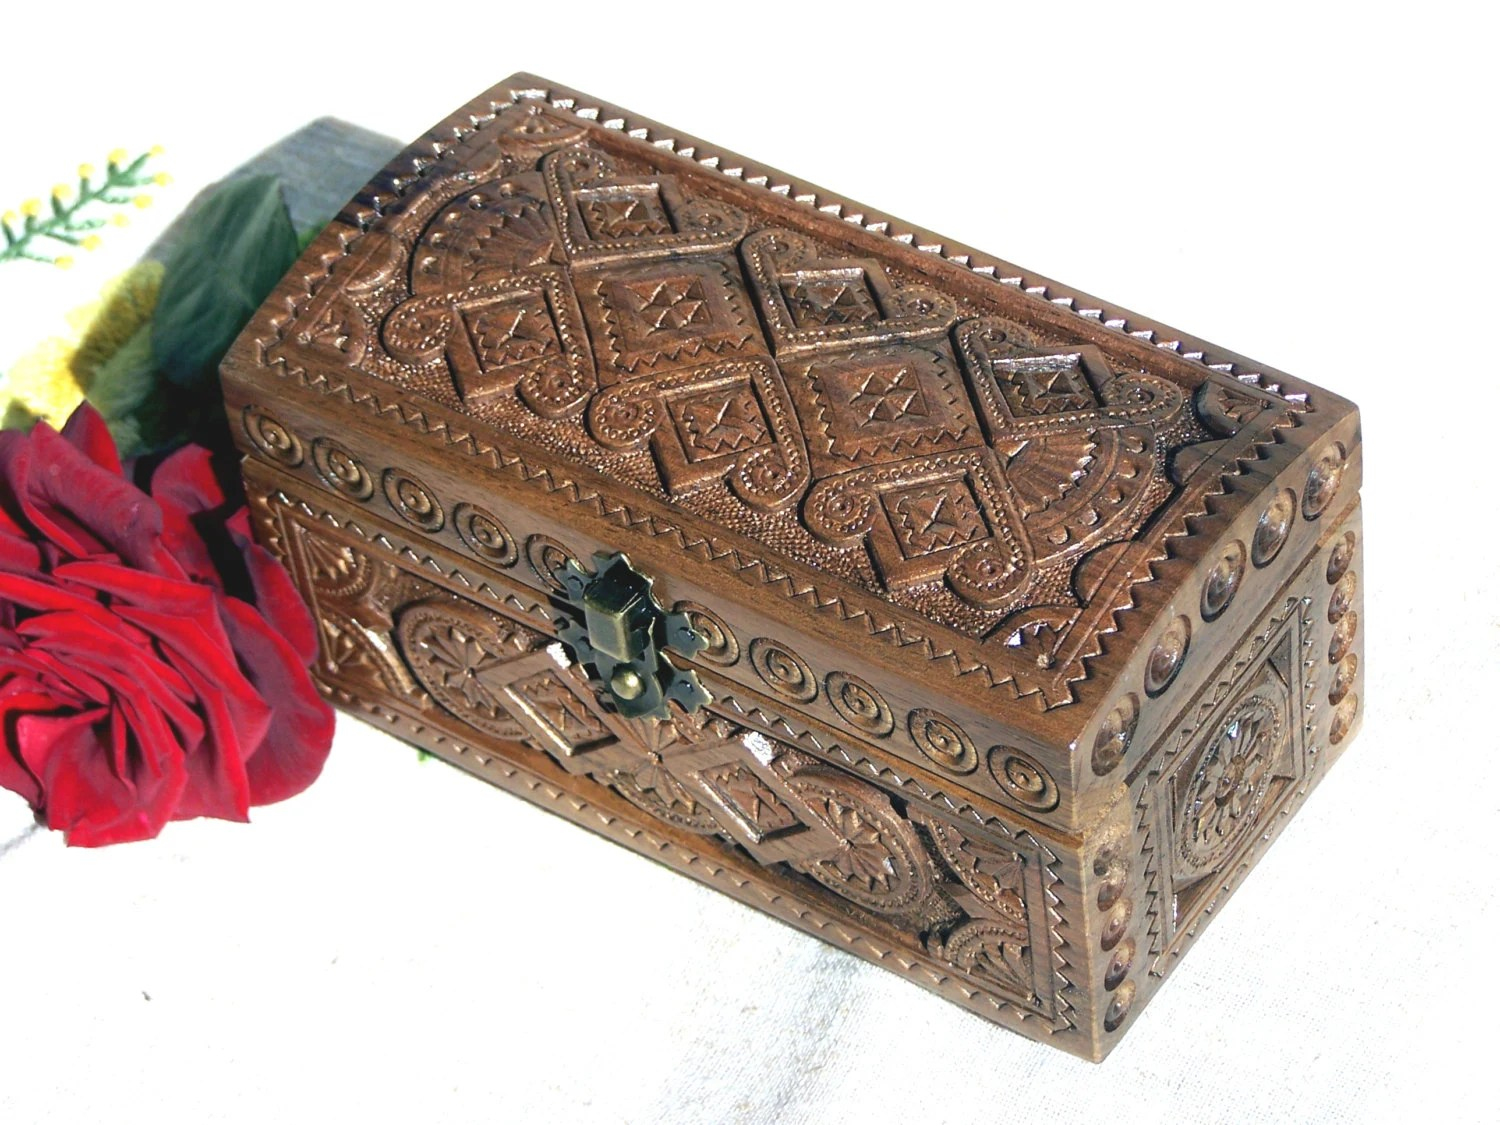 Jewelry box Ring box Wooden box Carved wood box Wedding gift Wood carving Jewellery box Jewelry boxes Wooden boxes Medieval ring boxes B28 - HappyFlying